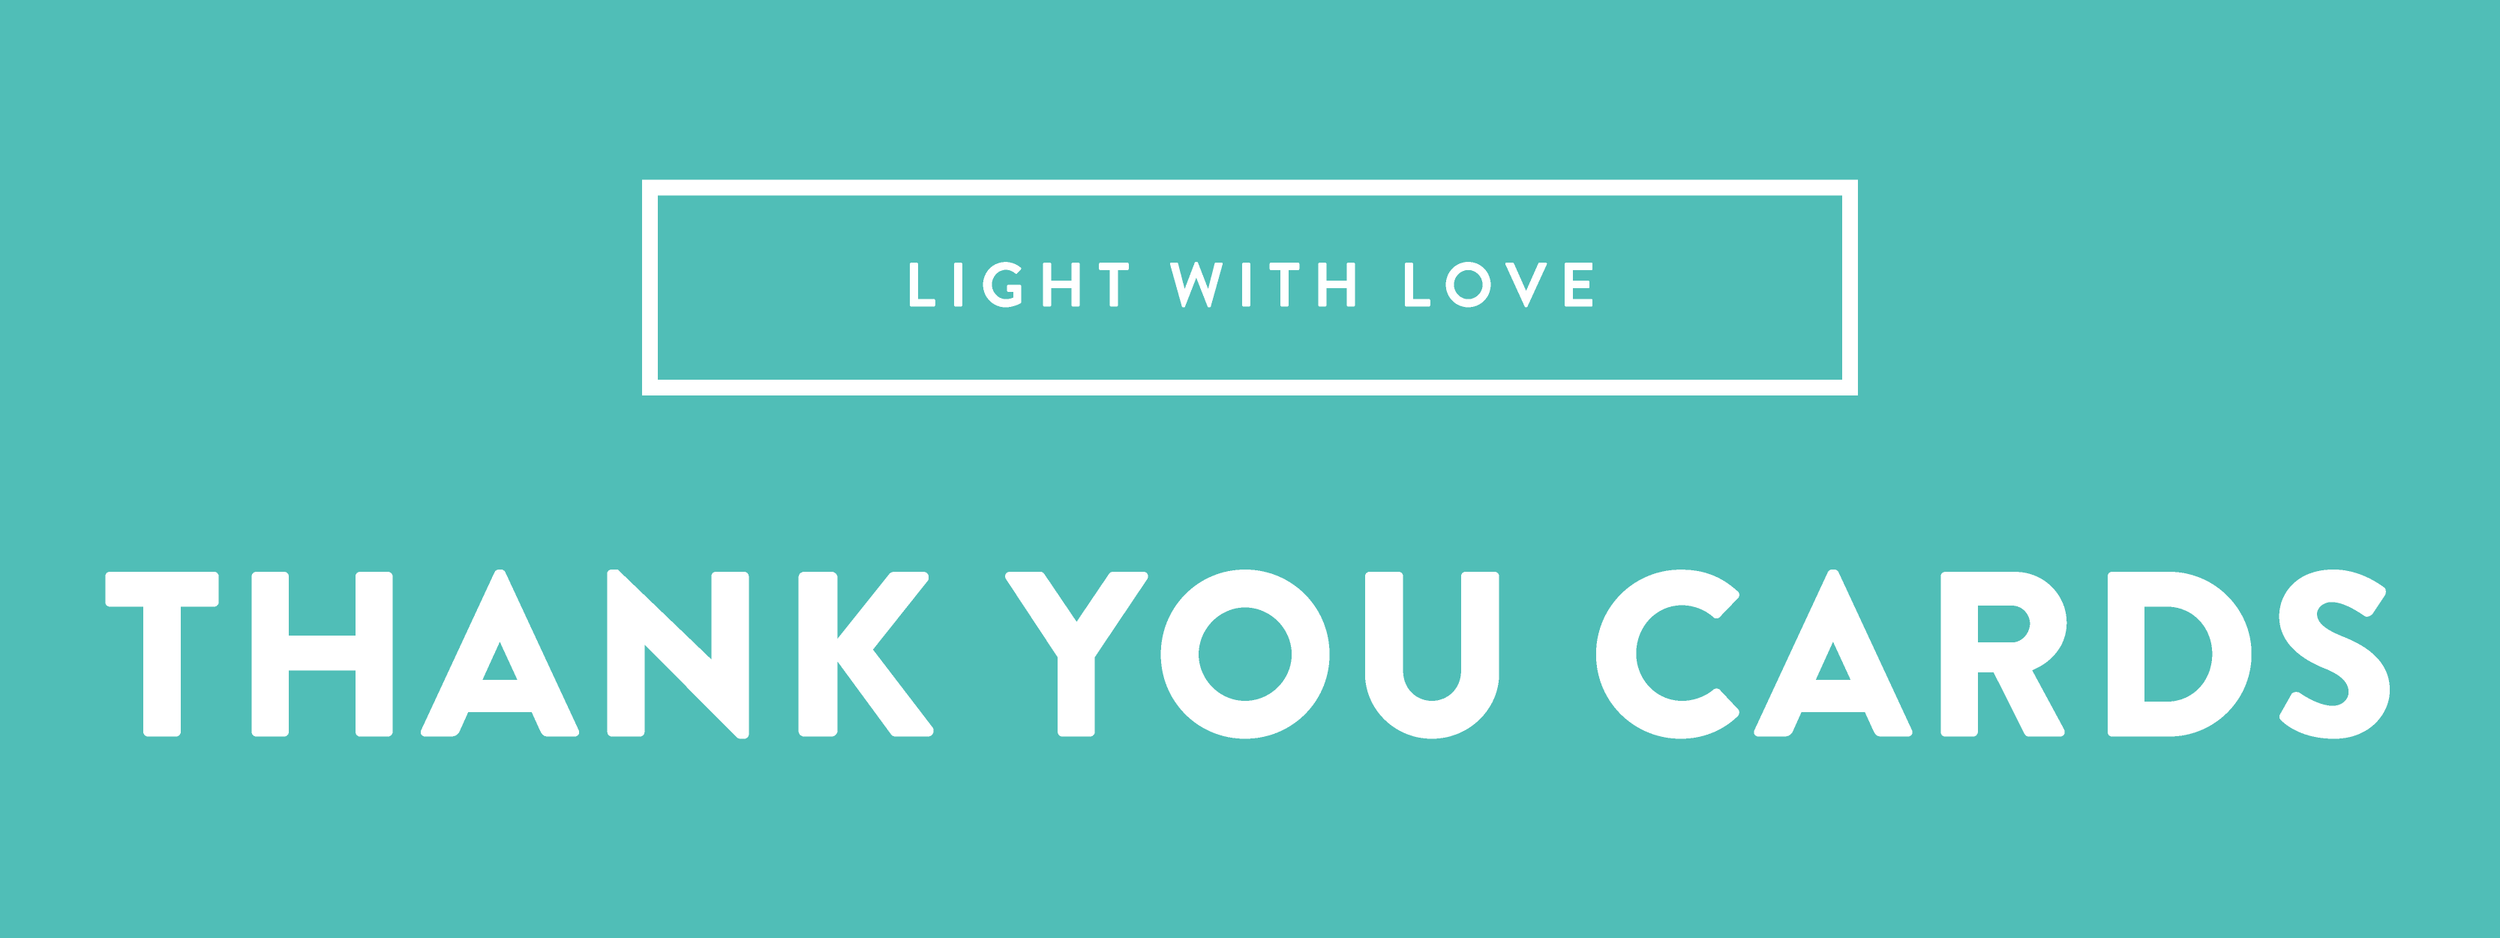 LWLP_Thank you cards header.png